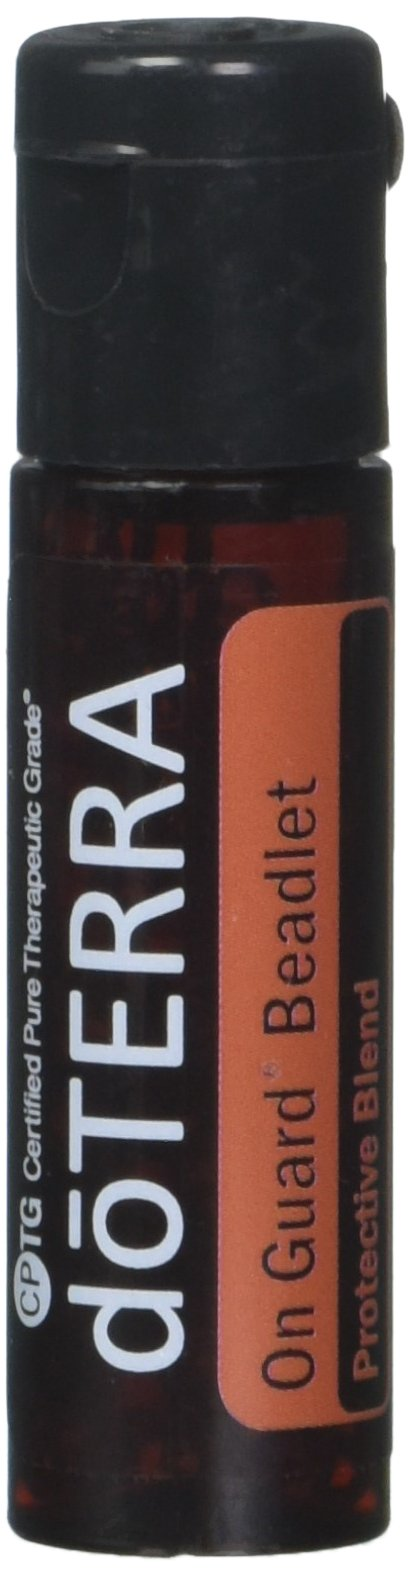 doTERRA On Guard Essential Oil Protective Blend Beadlets 125 ct (2 Pack) by DoTerra